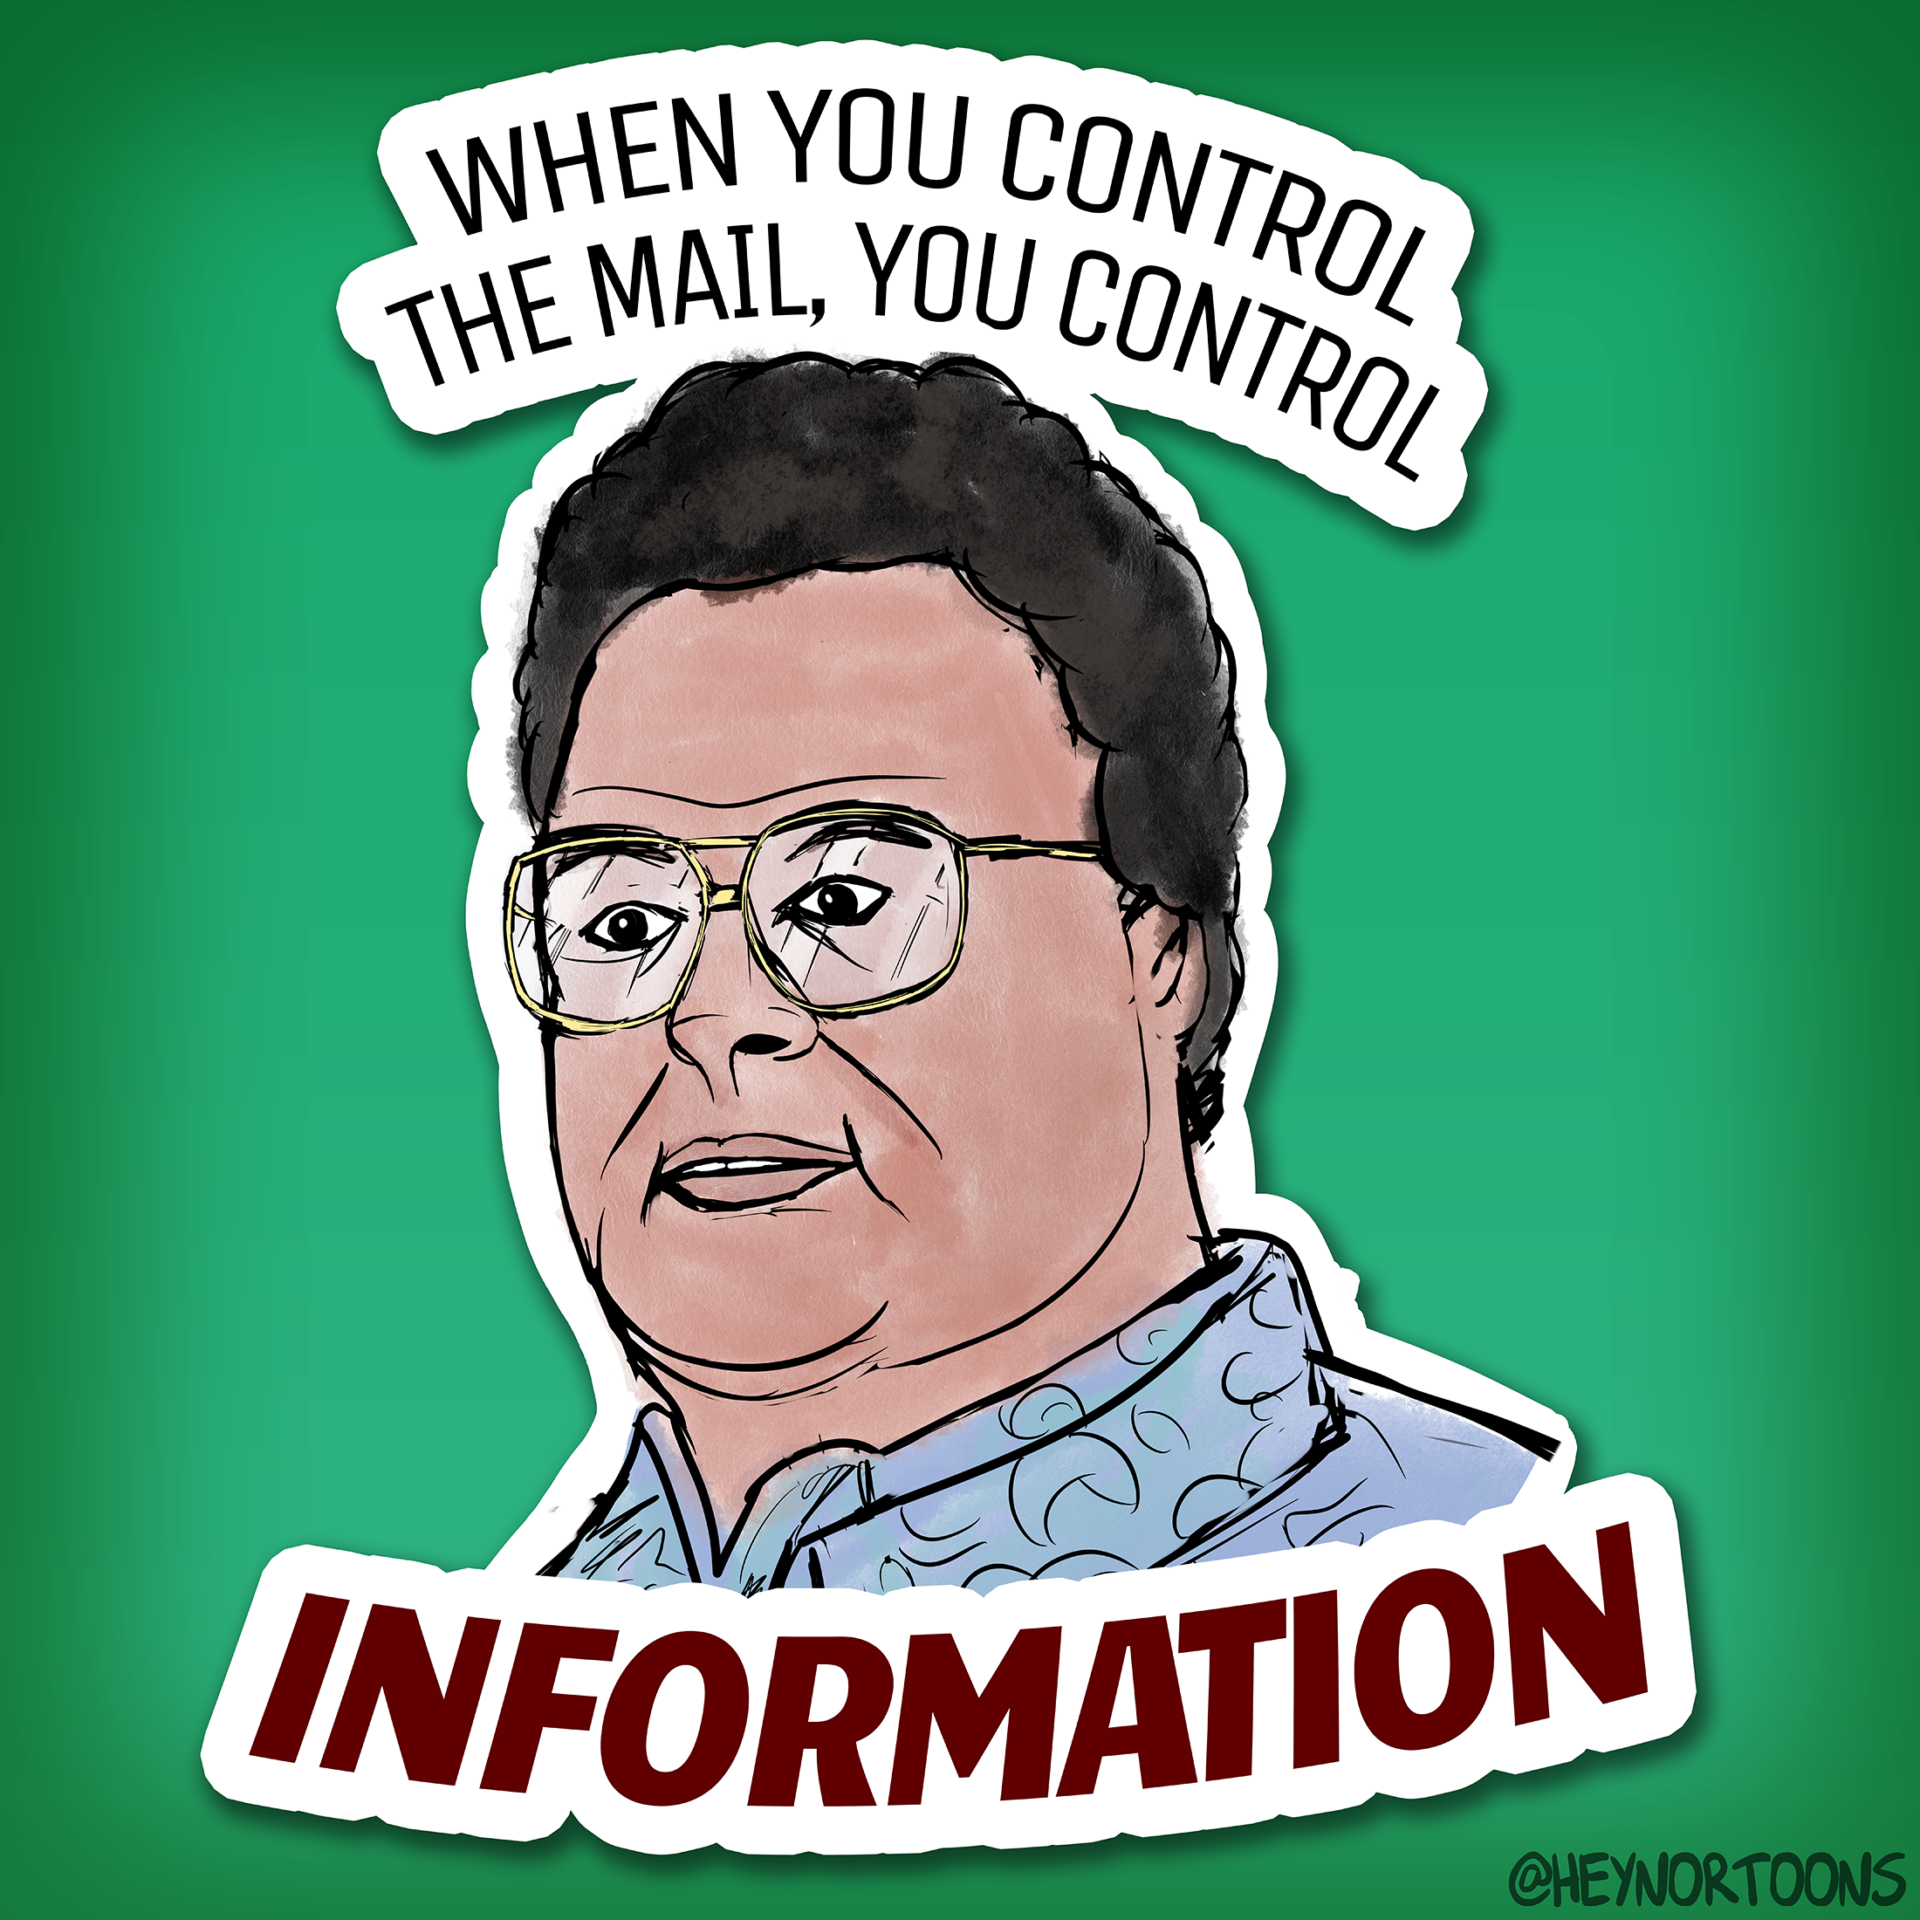 Newman from Seinfeld: When you control the mail you control INFORMATION